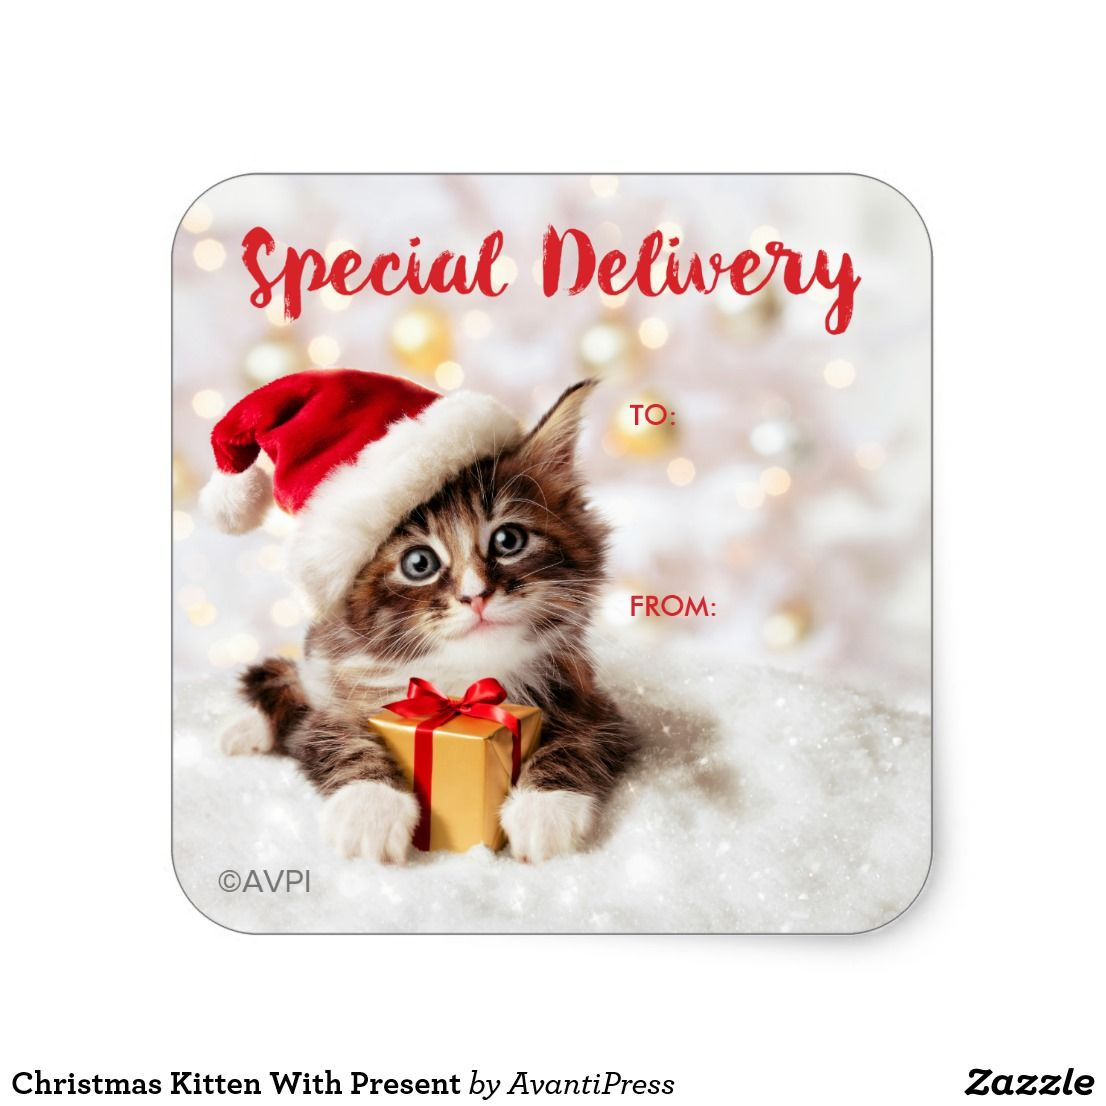 Christmas Kitten With Present Square Sticker Zazzle Com Christmas Kitten Christmas Pet Photos Christmas Stickers